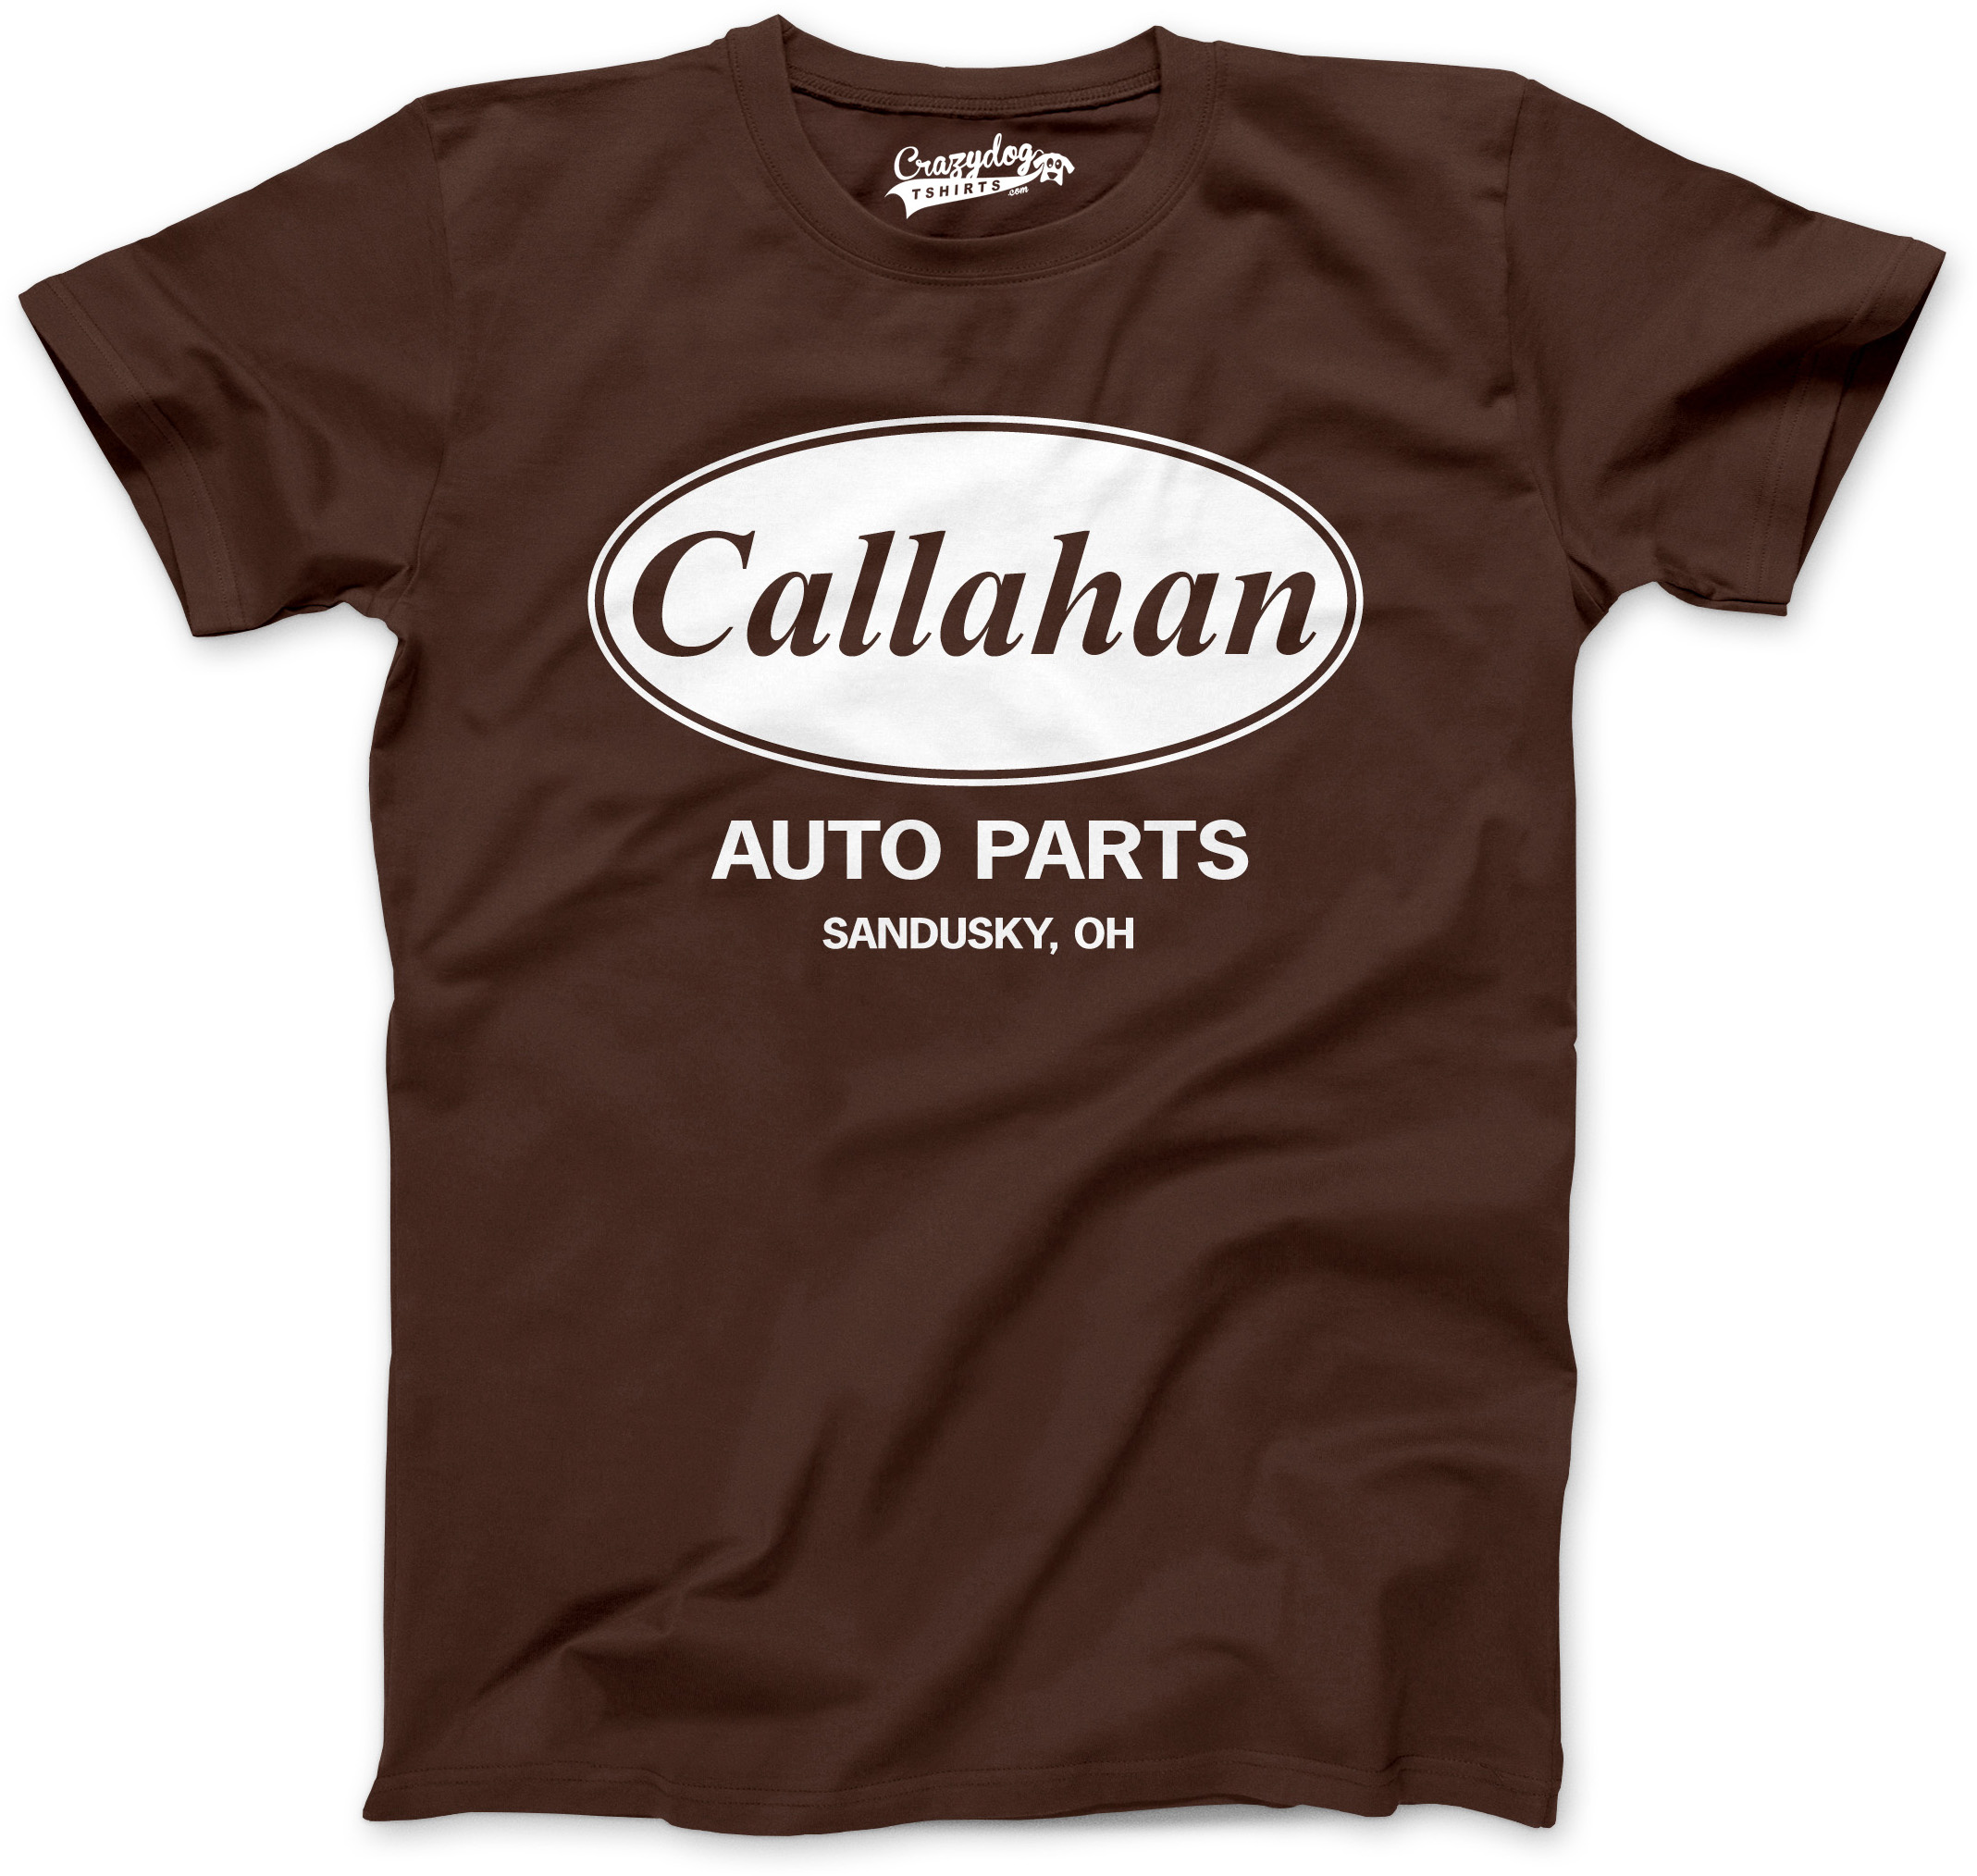 Men 39 s callahan auto parts t shirt funny logo novelty for Silly shirts for men